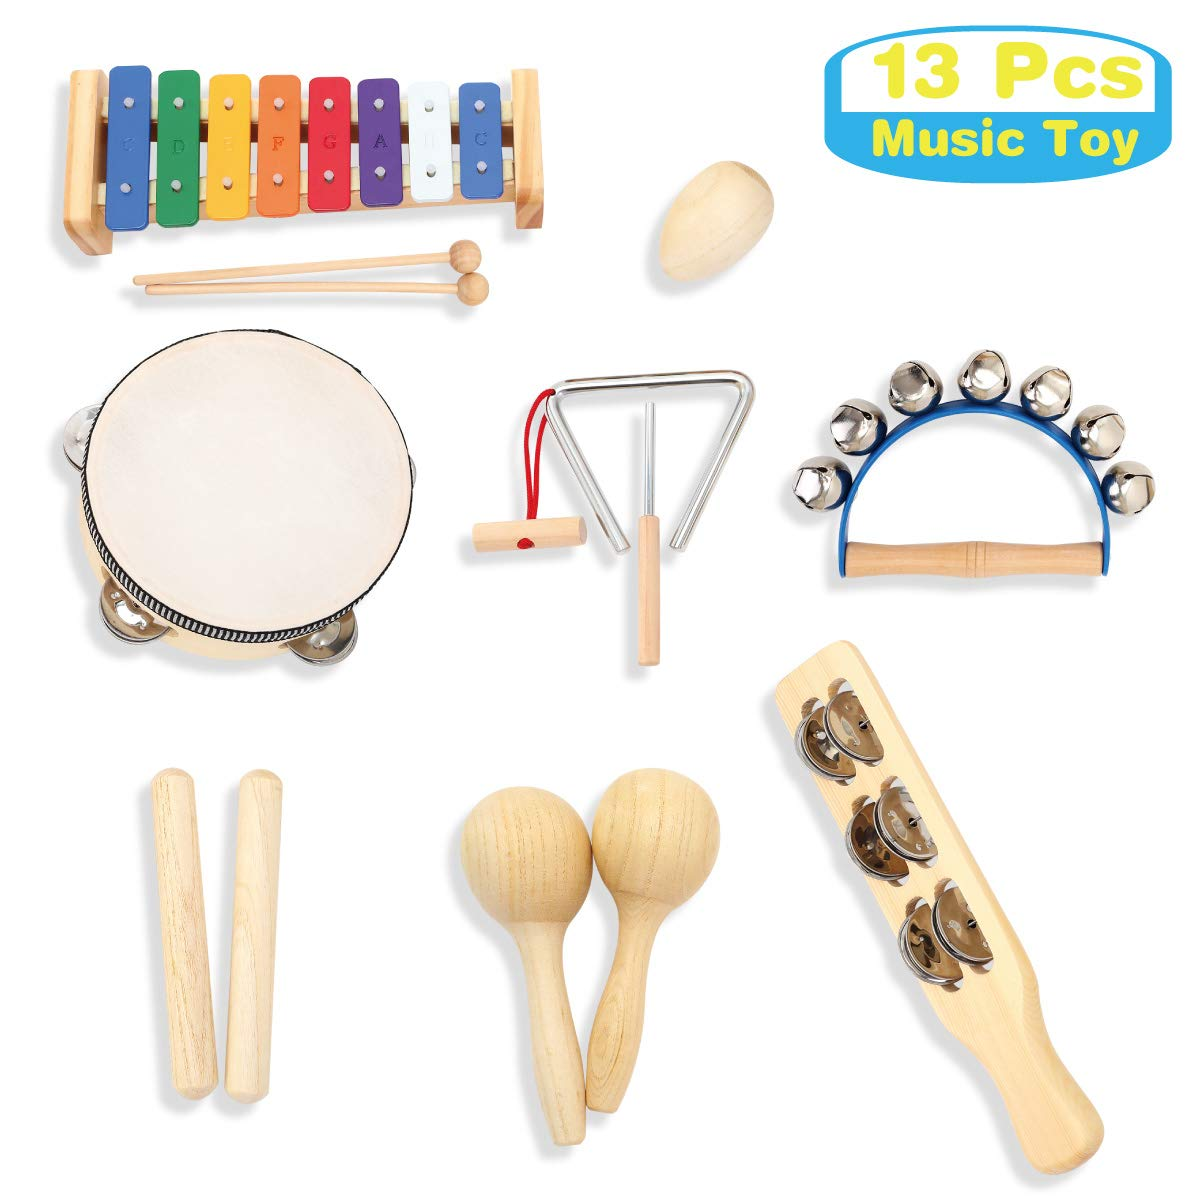 MUSICUBE Kids Wood Musical Instruments, Percussion Set with Xylophone for Kids Children, 13 Pcs, ASTM Certified Toddler Musical Toys by MUSICUBE